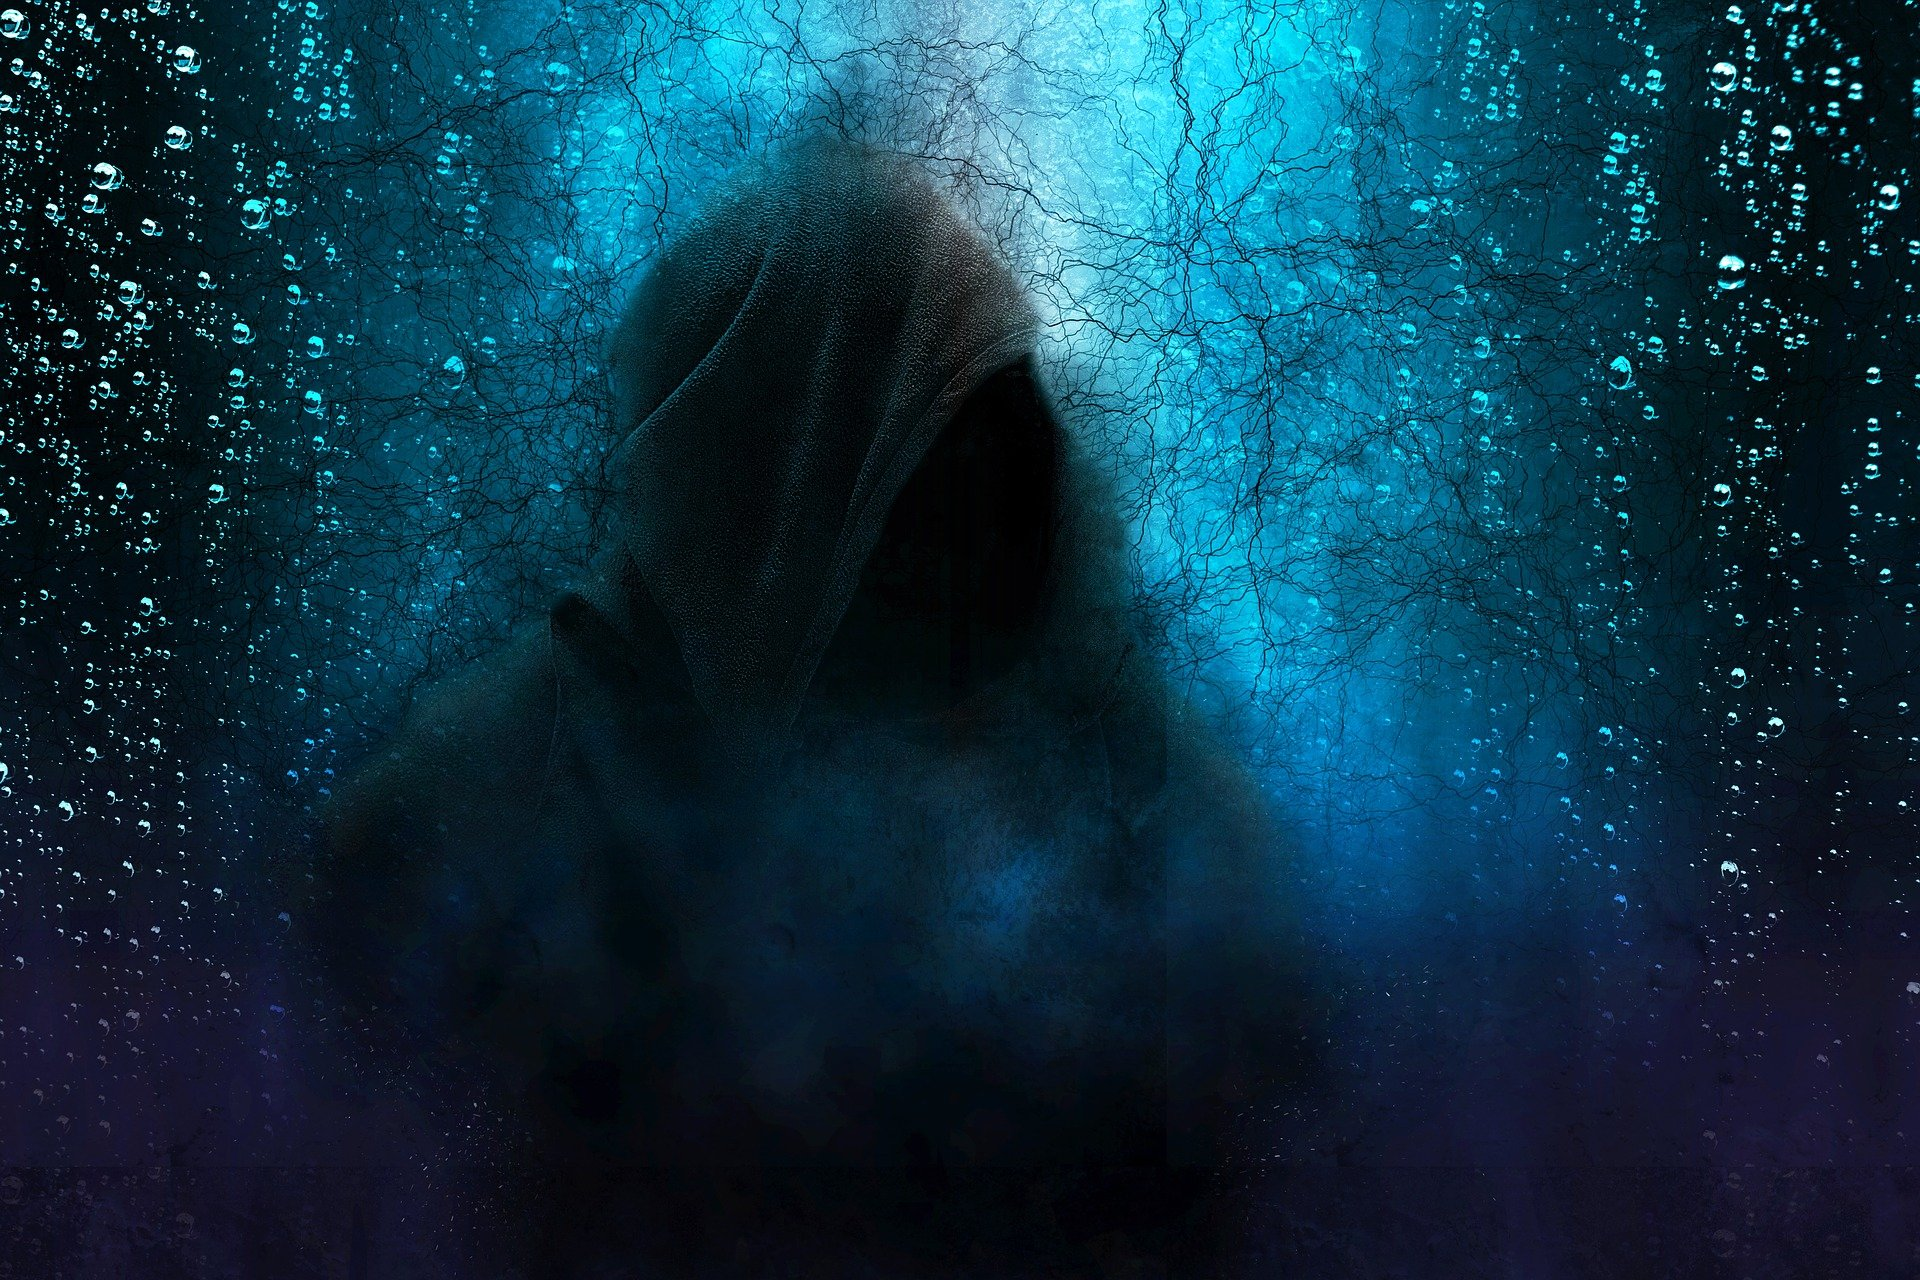 hooded-man-2580085_1920